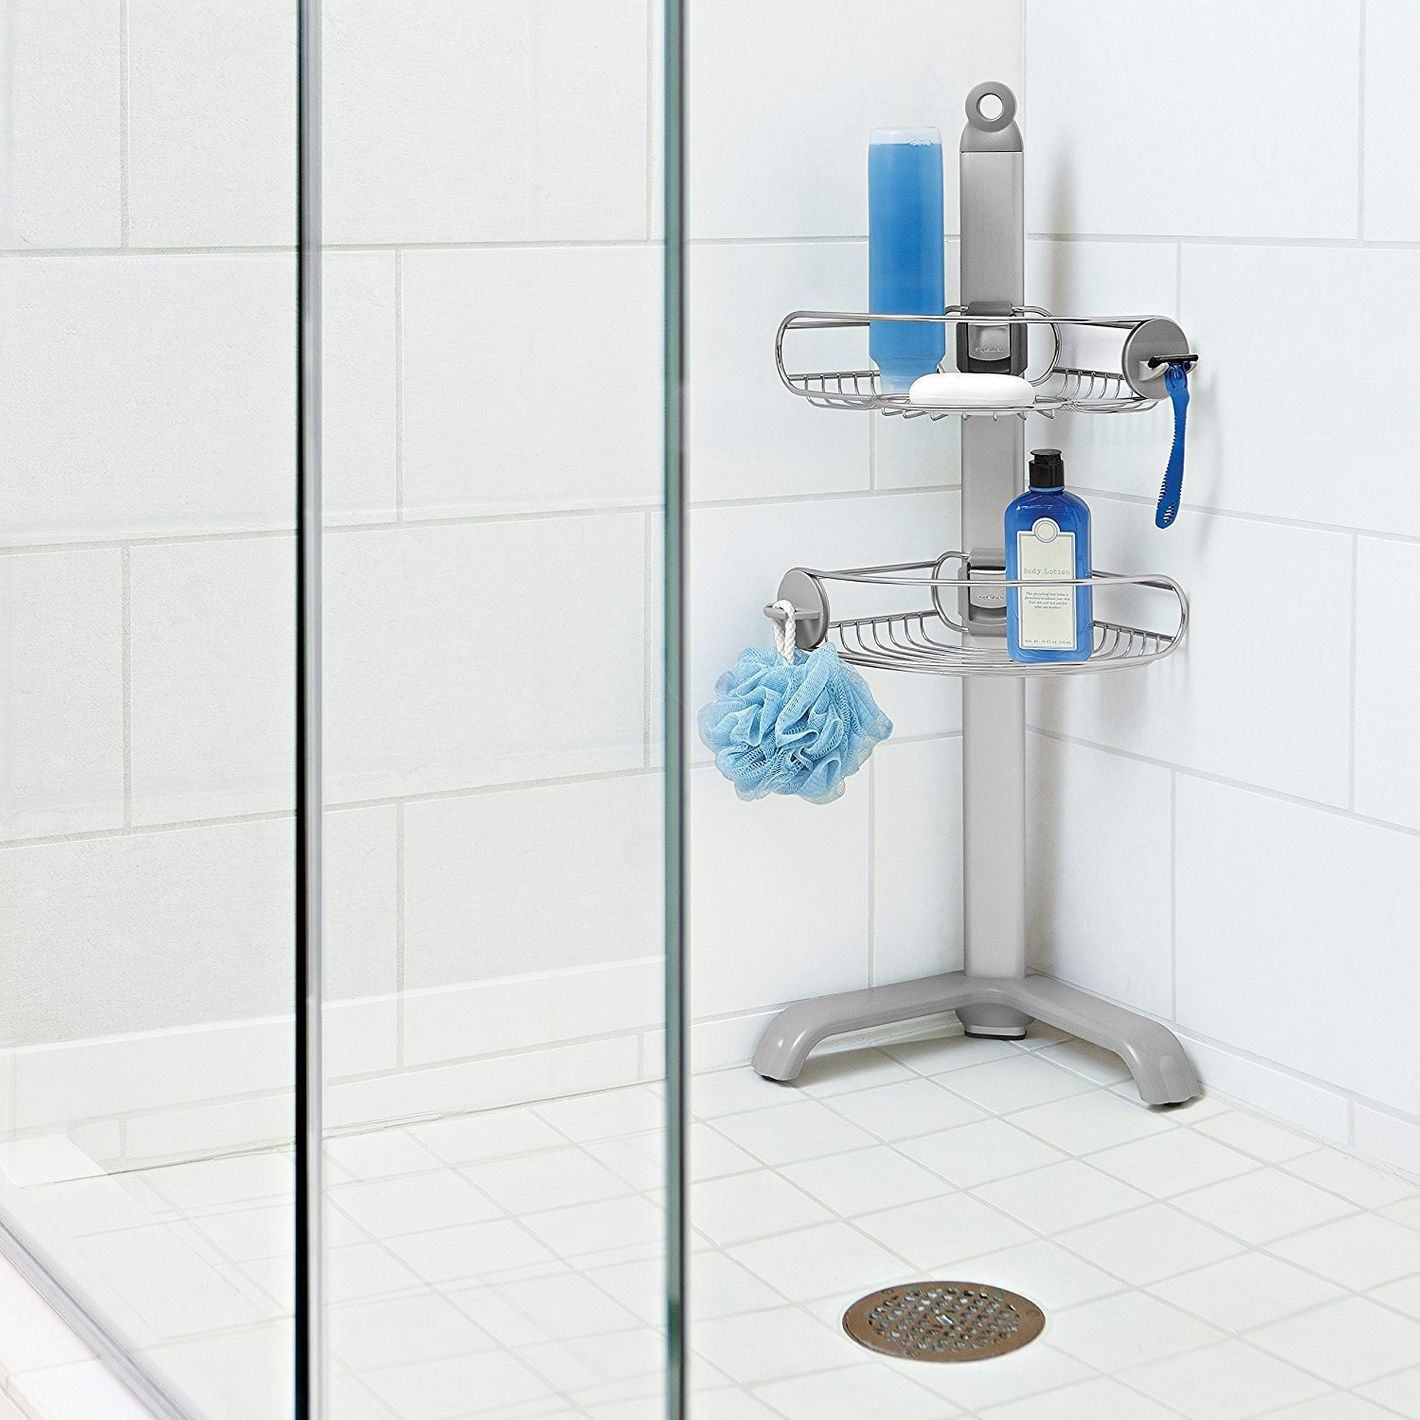 Best Shower Caddies, Shower Organizers on Amazon